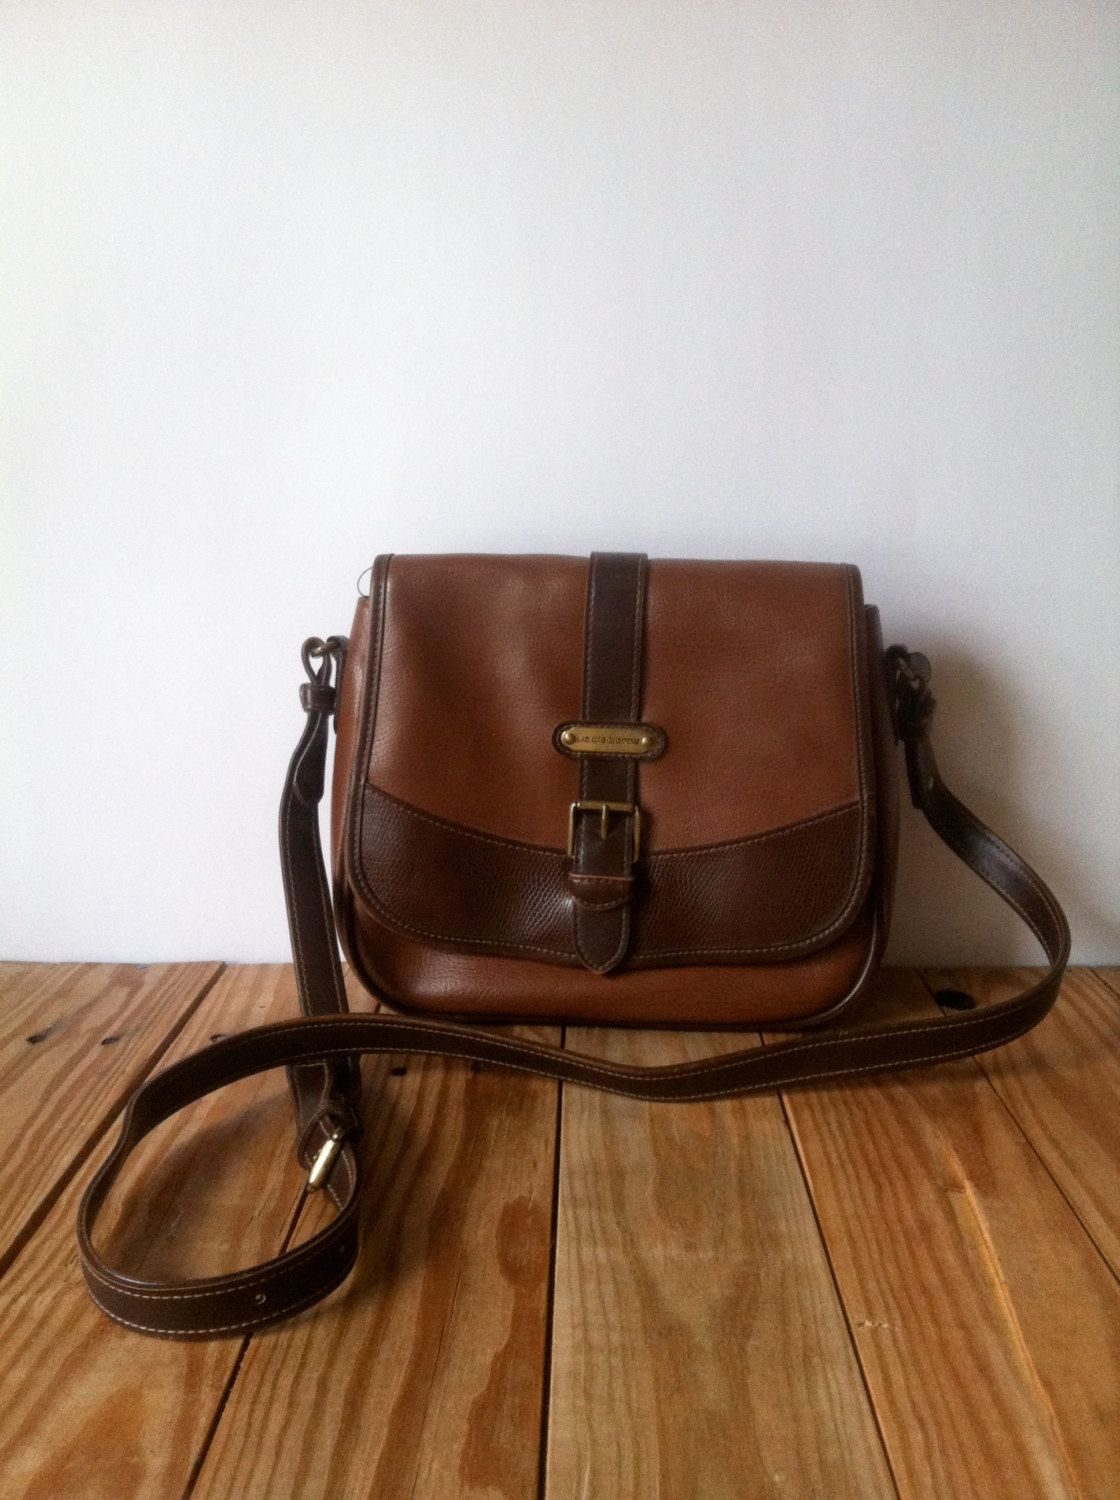 Genuine Leather Purse - Vintage Earthy Simple Rustic Liz Claiborne Shoulder  Bag Cross Body Handbag Brown   Tan via Etsy. 1098fa792fcdc